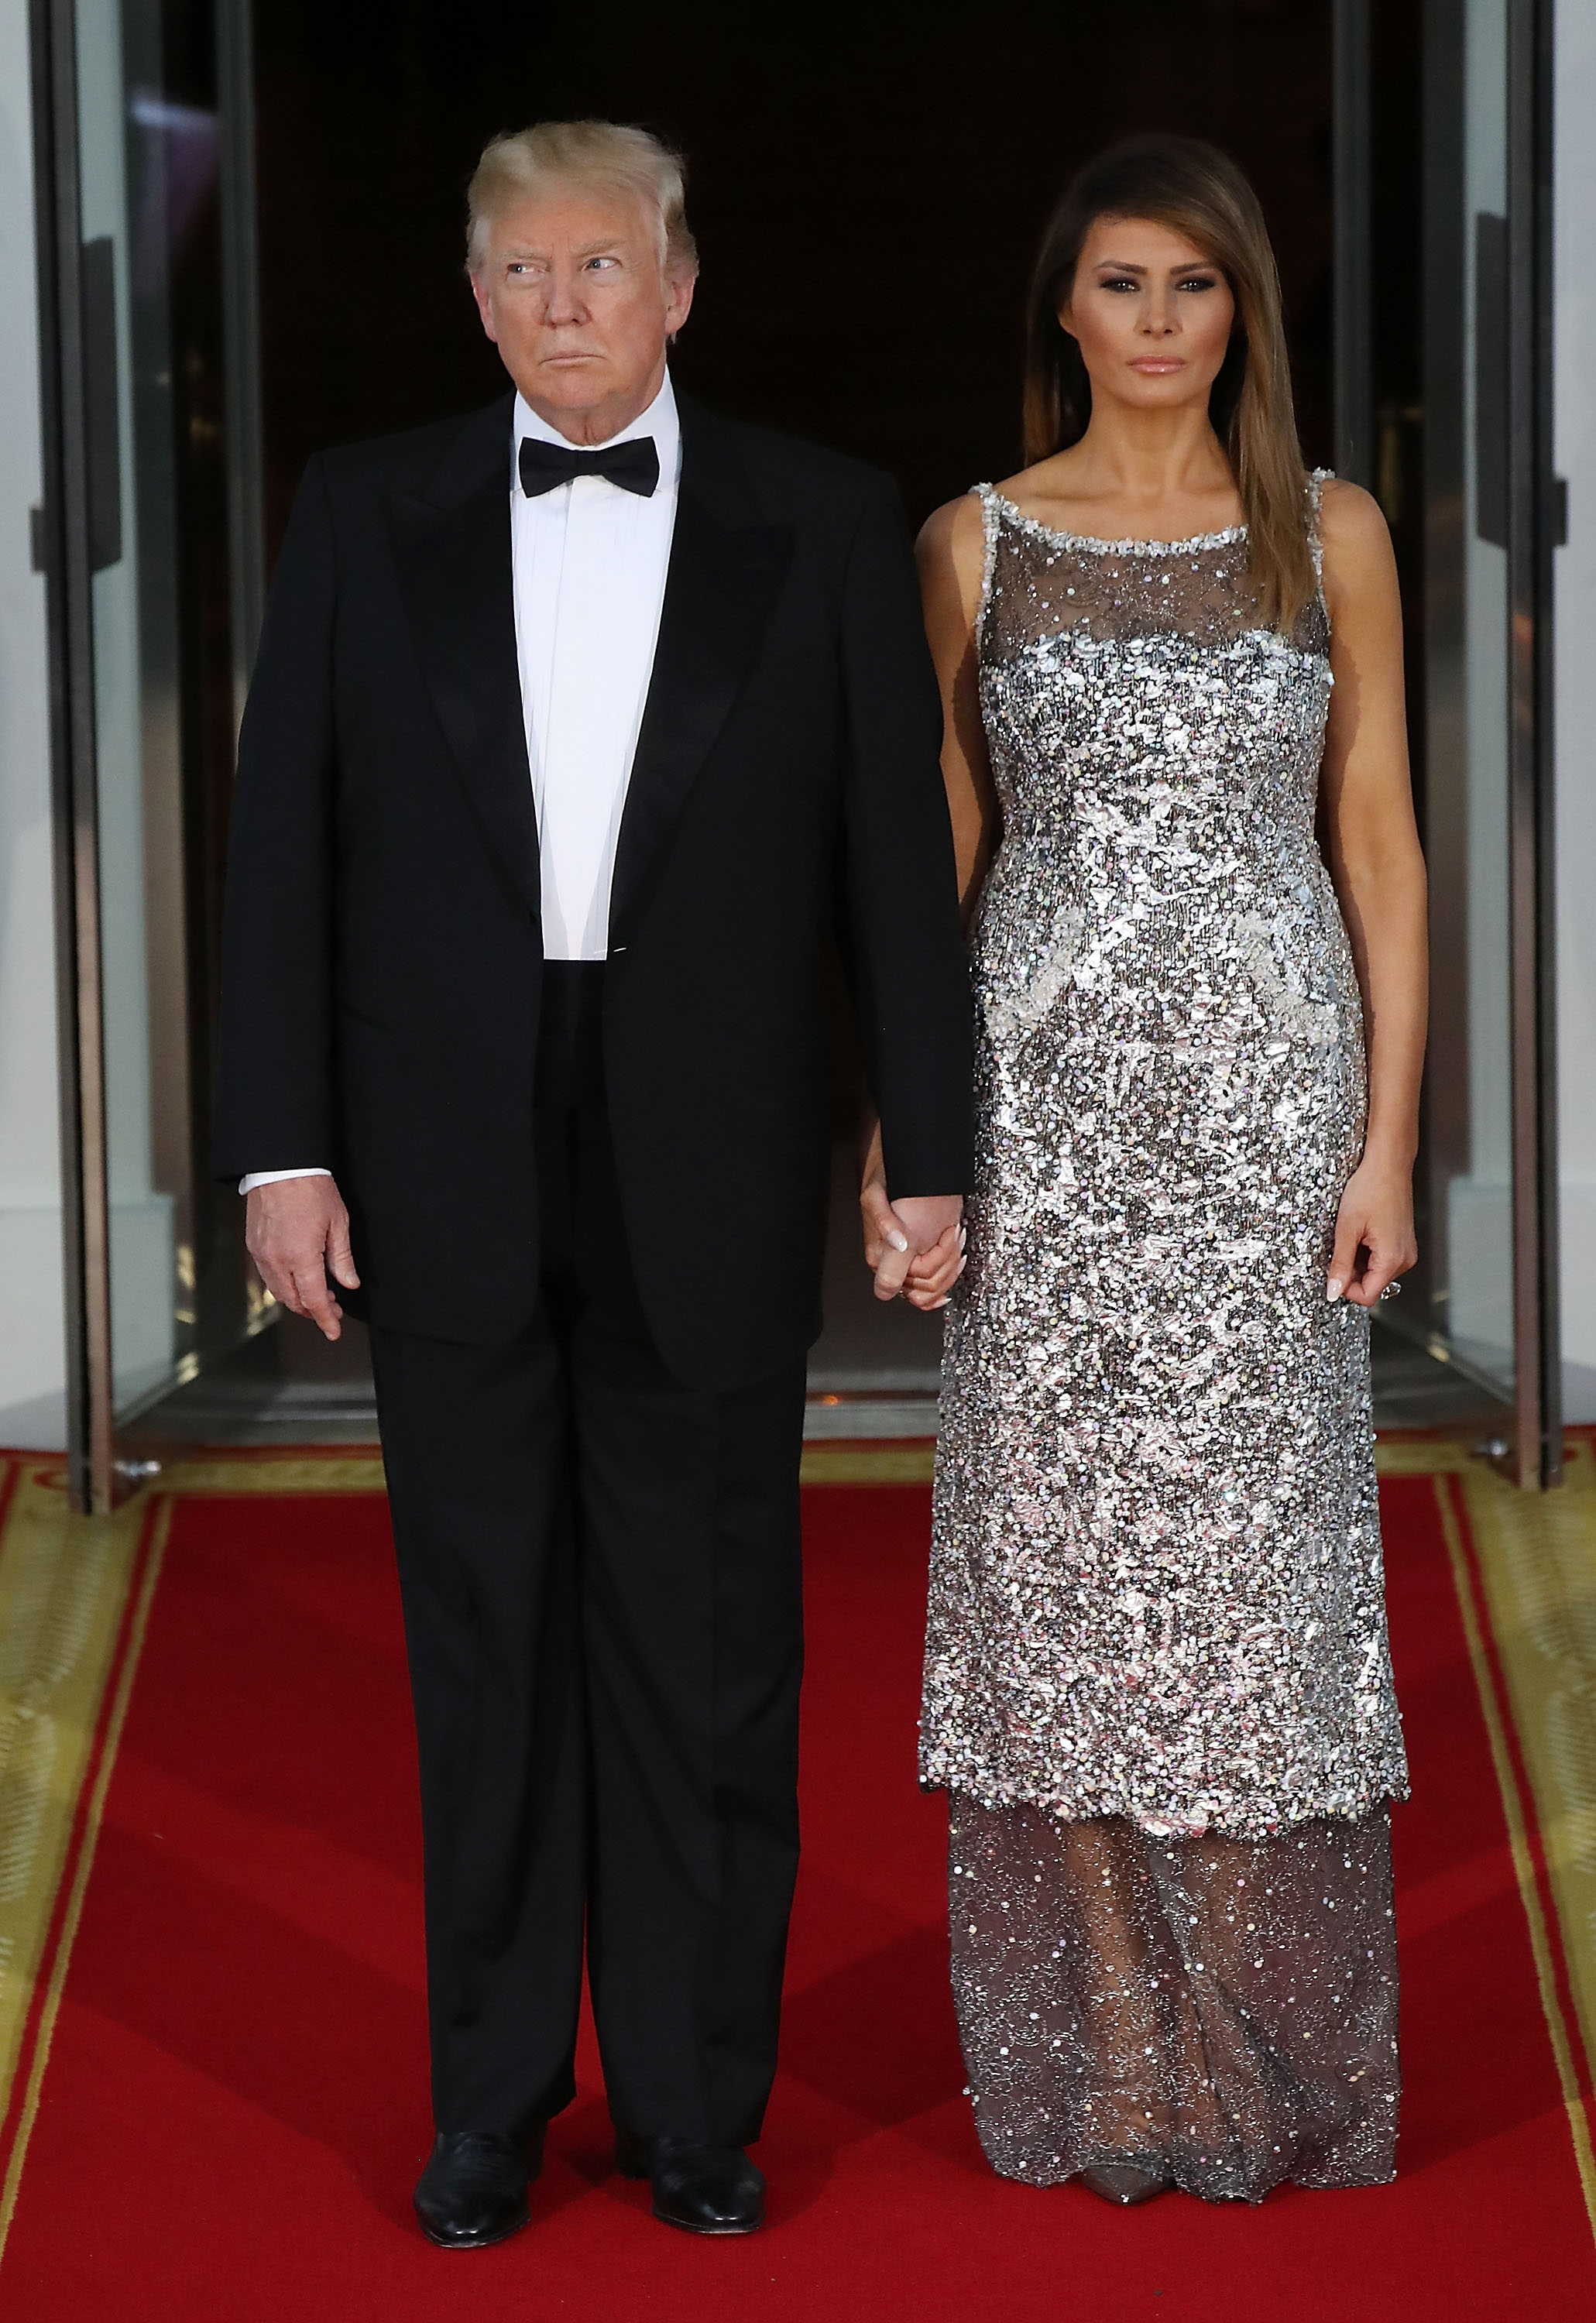 U.S President Donald Trump, and U.S. first lady Melania Trump wait for the arrival of French President Emmanuel Macron, French first lady Brigitte Macron at the North Portico for before a State Dinner at the White House April 24, 2018 in Washington, DC. Trump is hosting Macron for a two-day official visit that included dinner at George Washington's Mount Vernon, a tree planting on the White House South Lawn and a joint news conference.